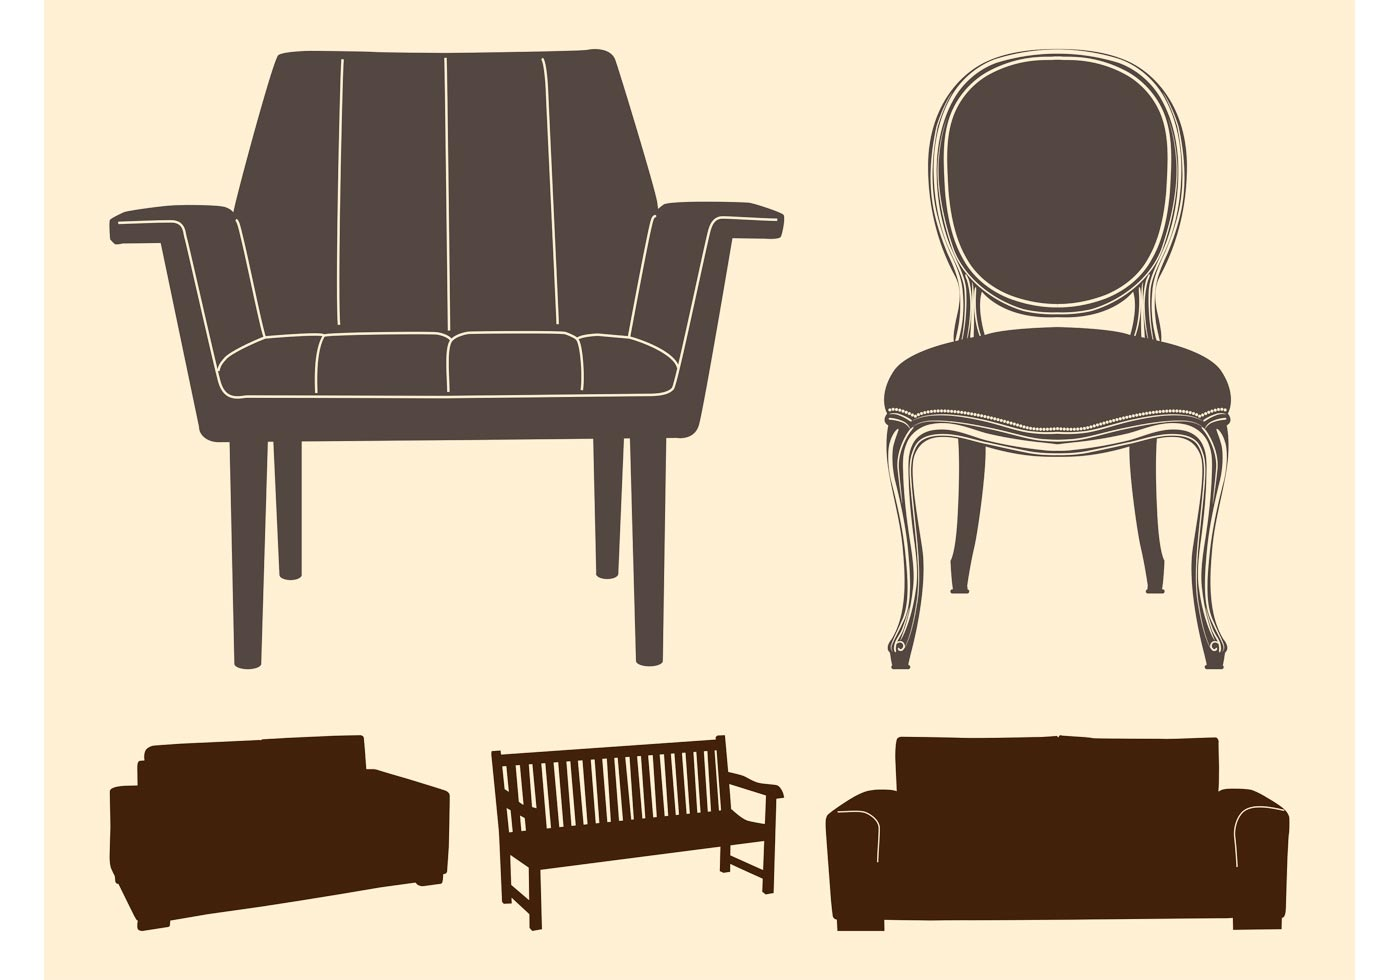 Chairs And Sofas Silhouettes Download Free Vector Art Stock Graphics Amp Images